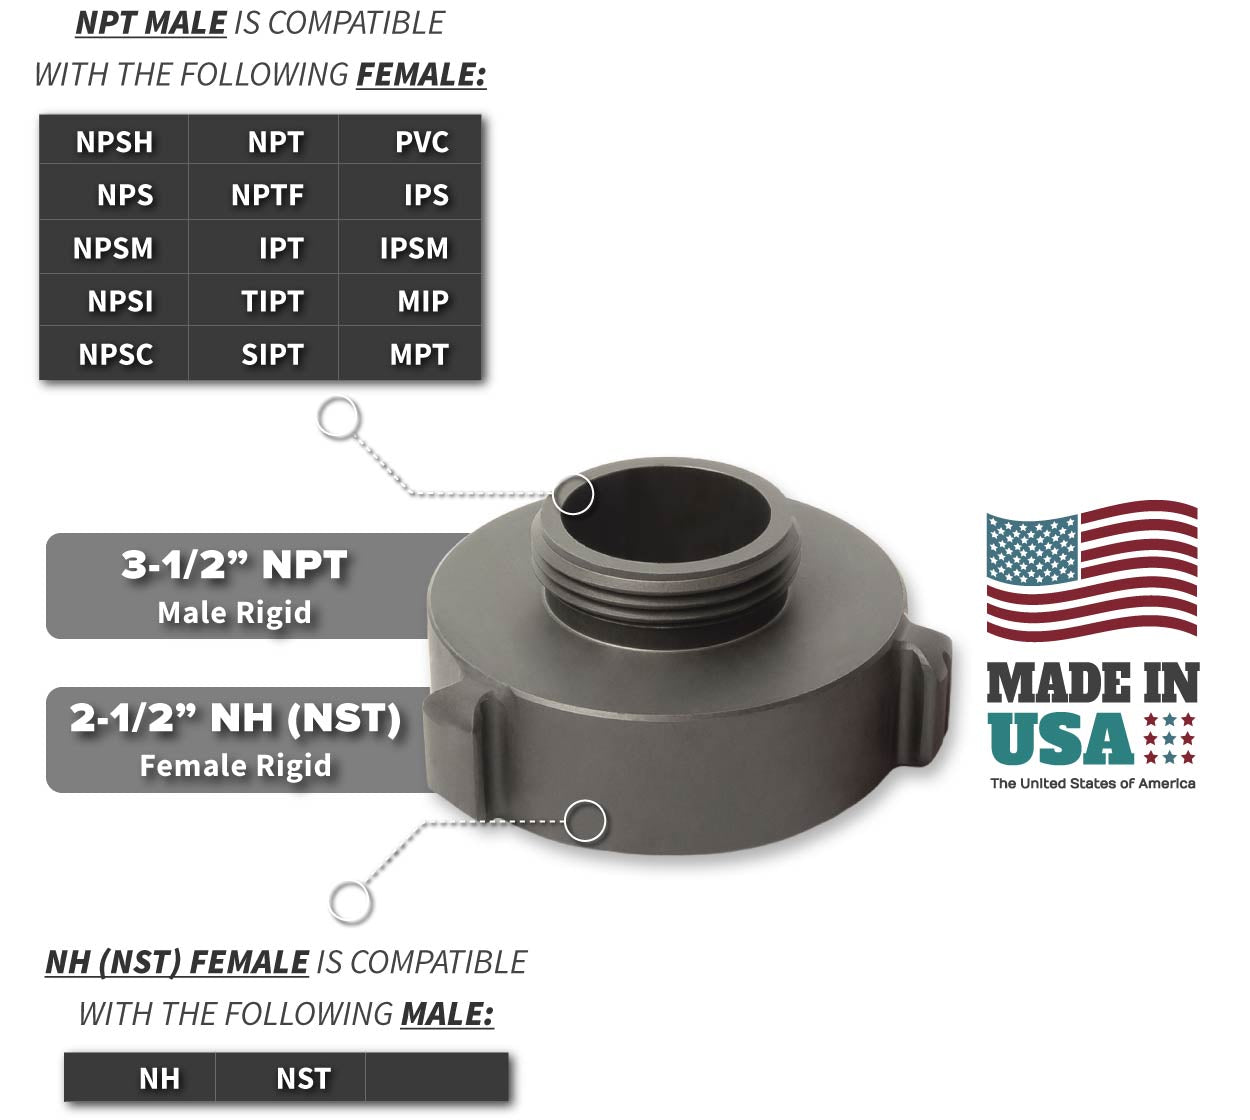 2.5 Inch NH-NST Female x 3.5 Inch NPT Male Compatibility Thread Chart